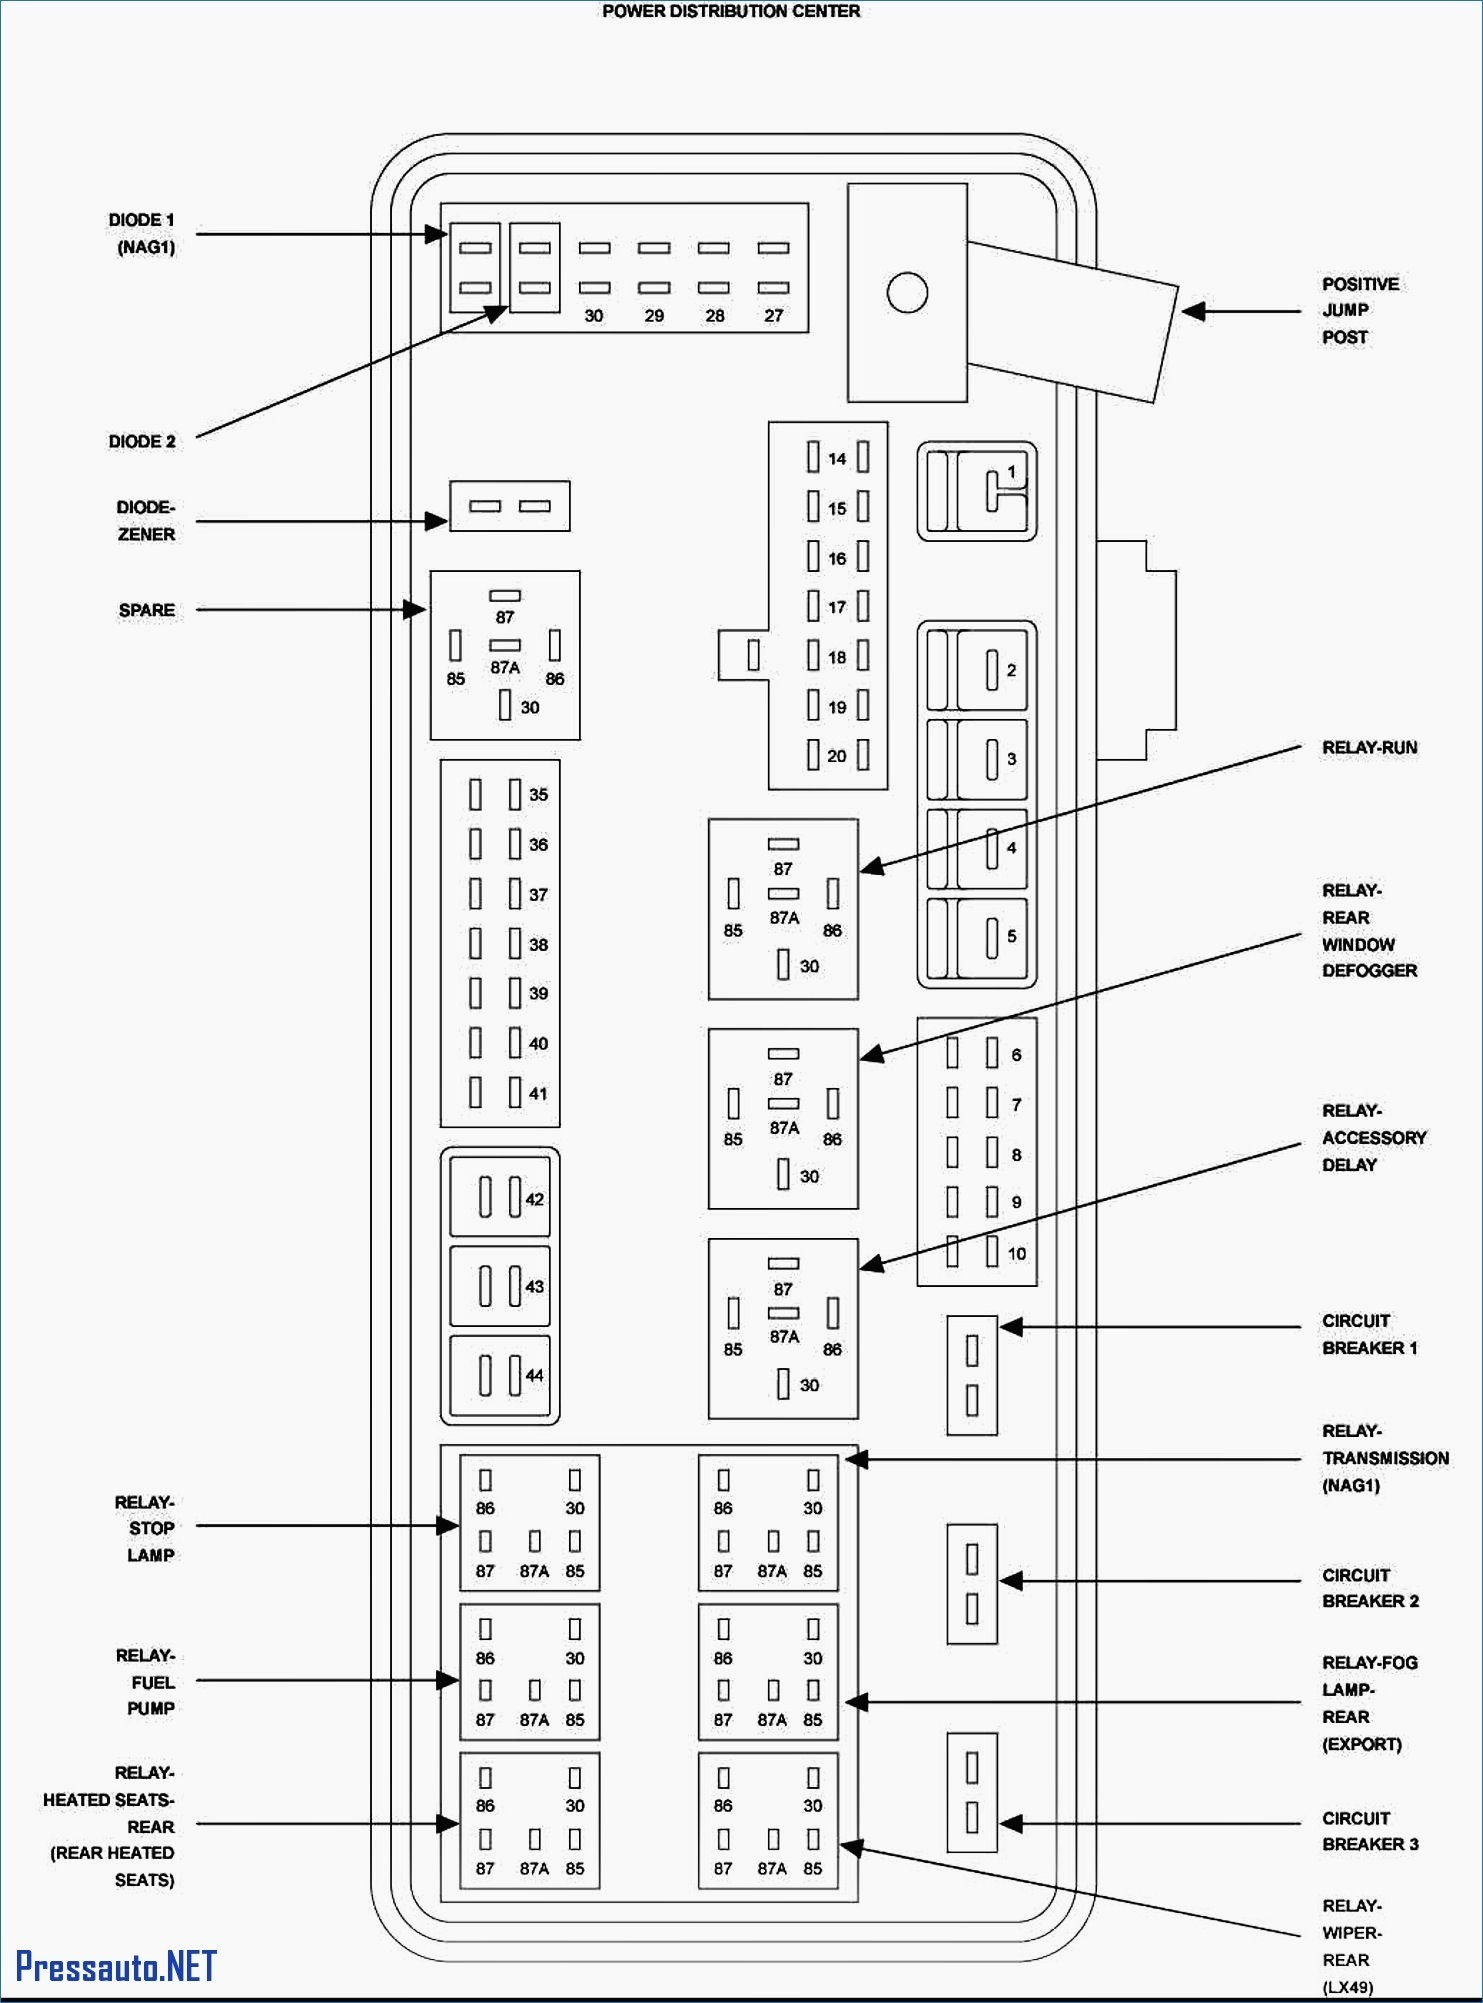 hight resolution of fuse box 2005 chrysler 300 wiring diagram samplechrysler fuse box diagram wiring diagrams fuse box 2005